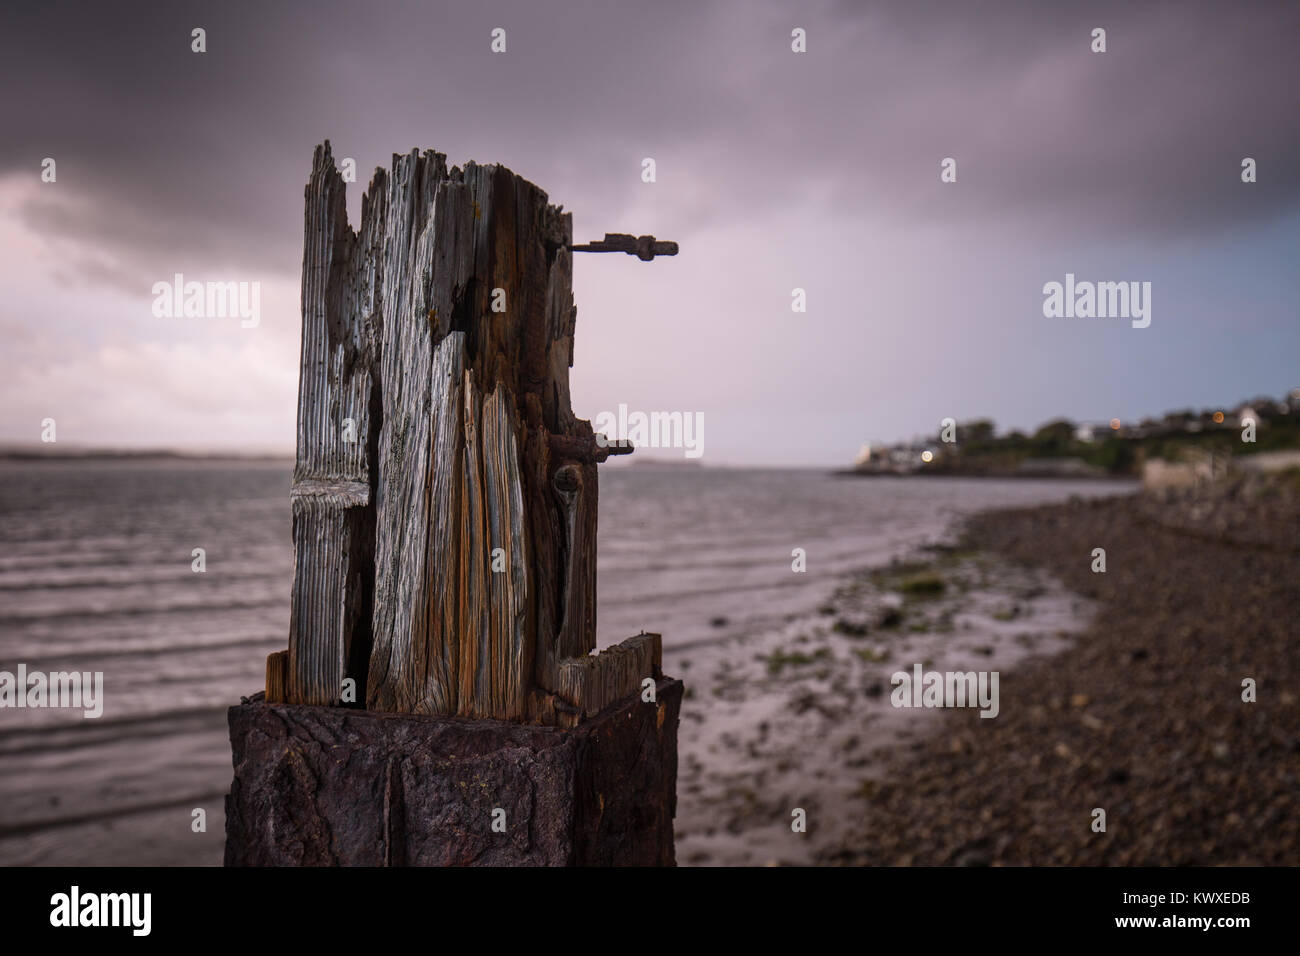 close up of an old shipyard timber near Appledore in Devon - Stock Image